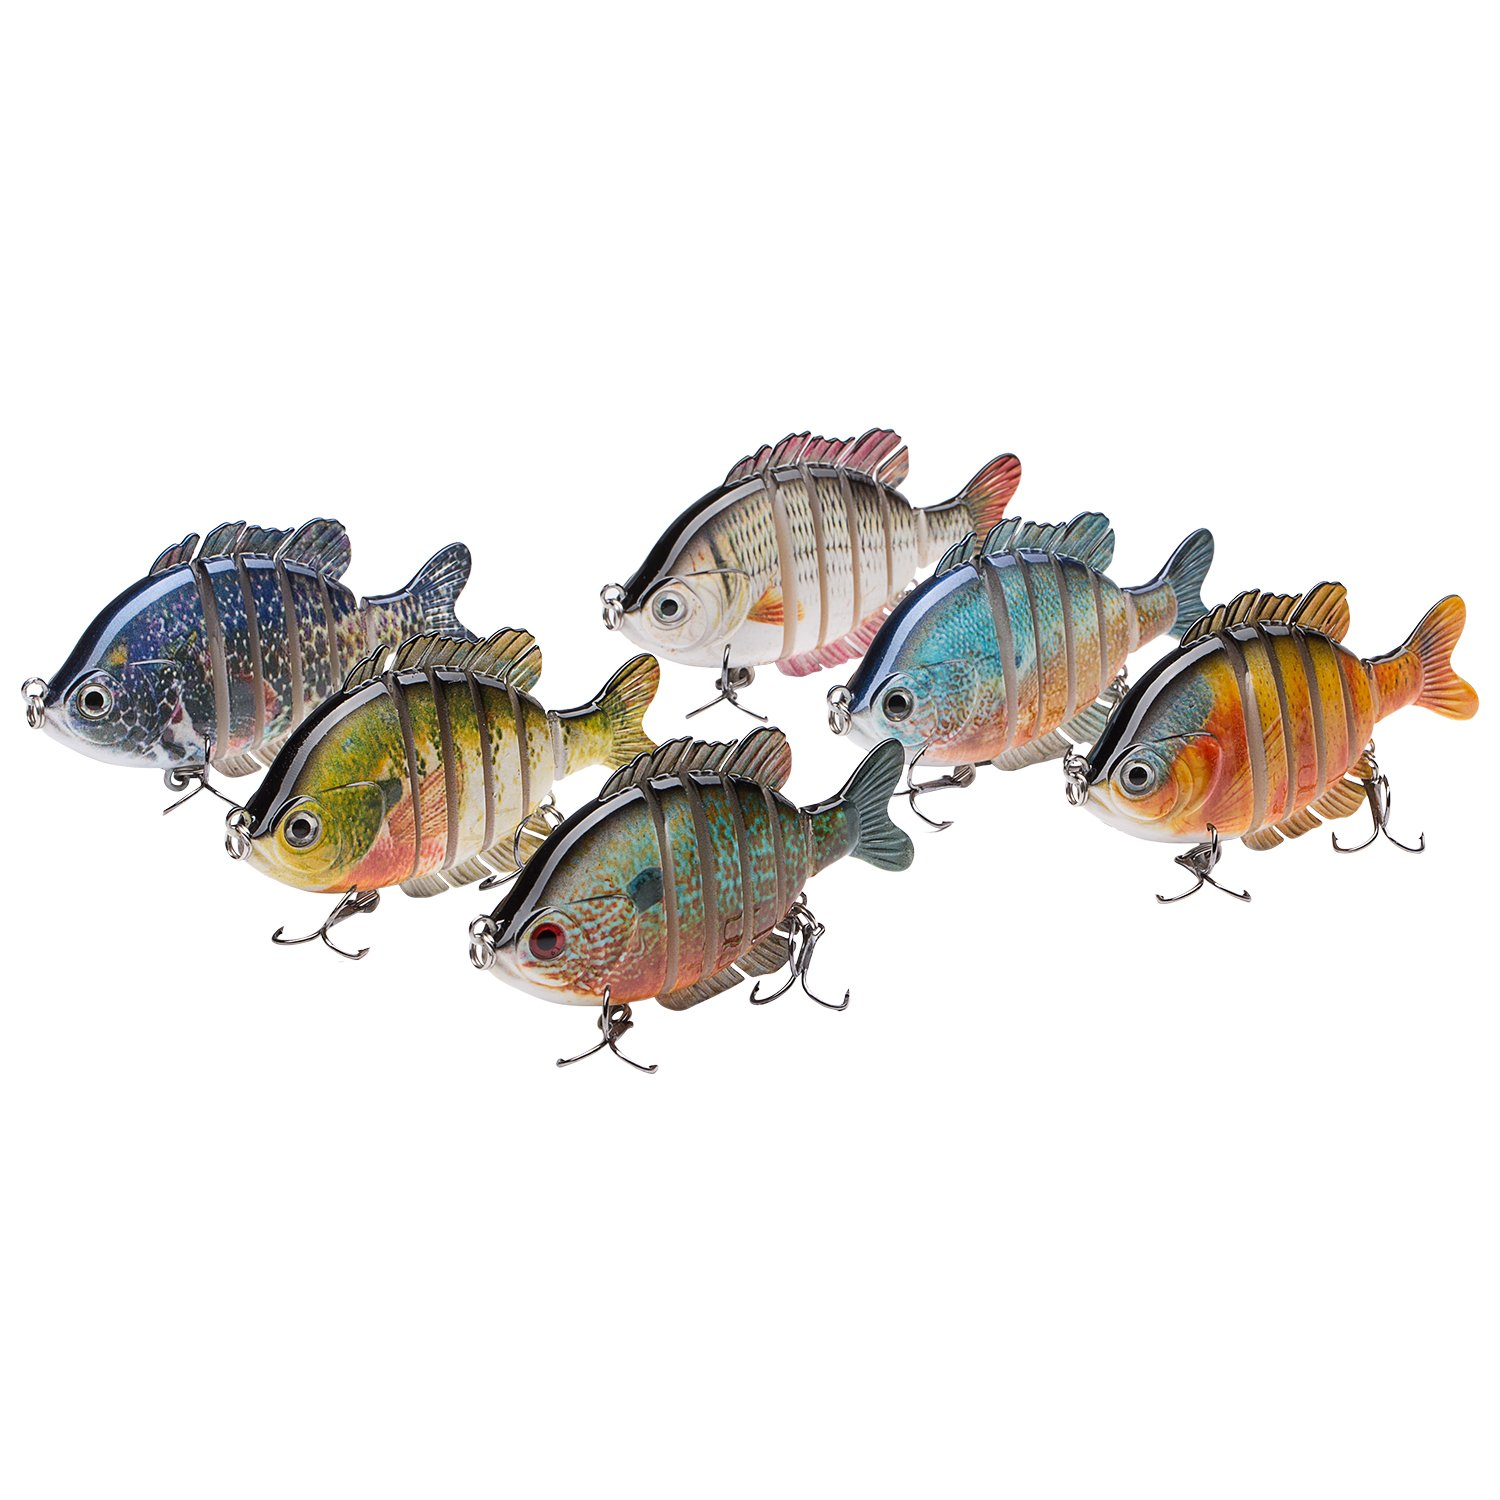 Bassdash SwimPanfish Multi Jointed Panfish Bluegill Swimbaits Topwater Hard Bass Fishing Crank Lure 3.5in/0.85oz (Pack of 6 Colors) by Bassdash